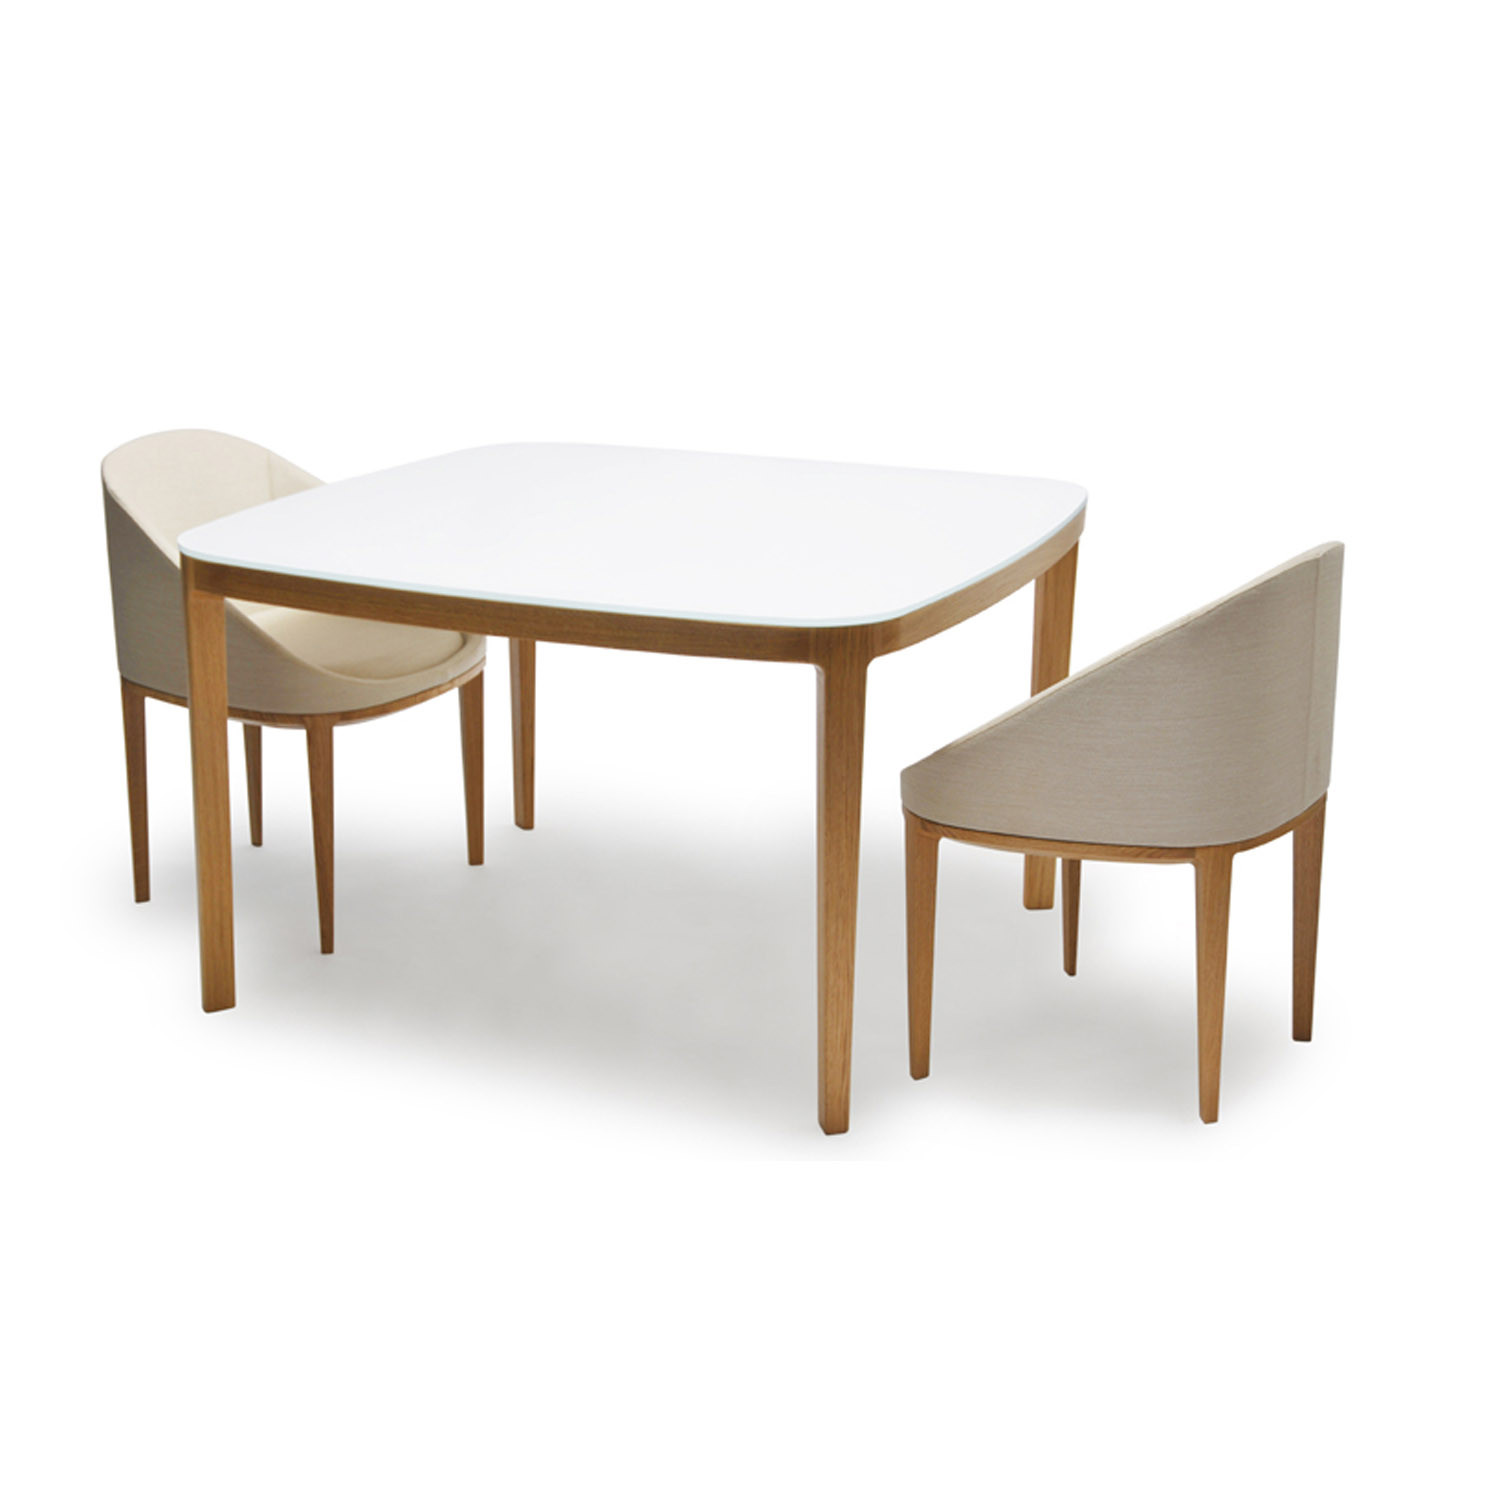 Orlo Dining Chair & Table